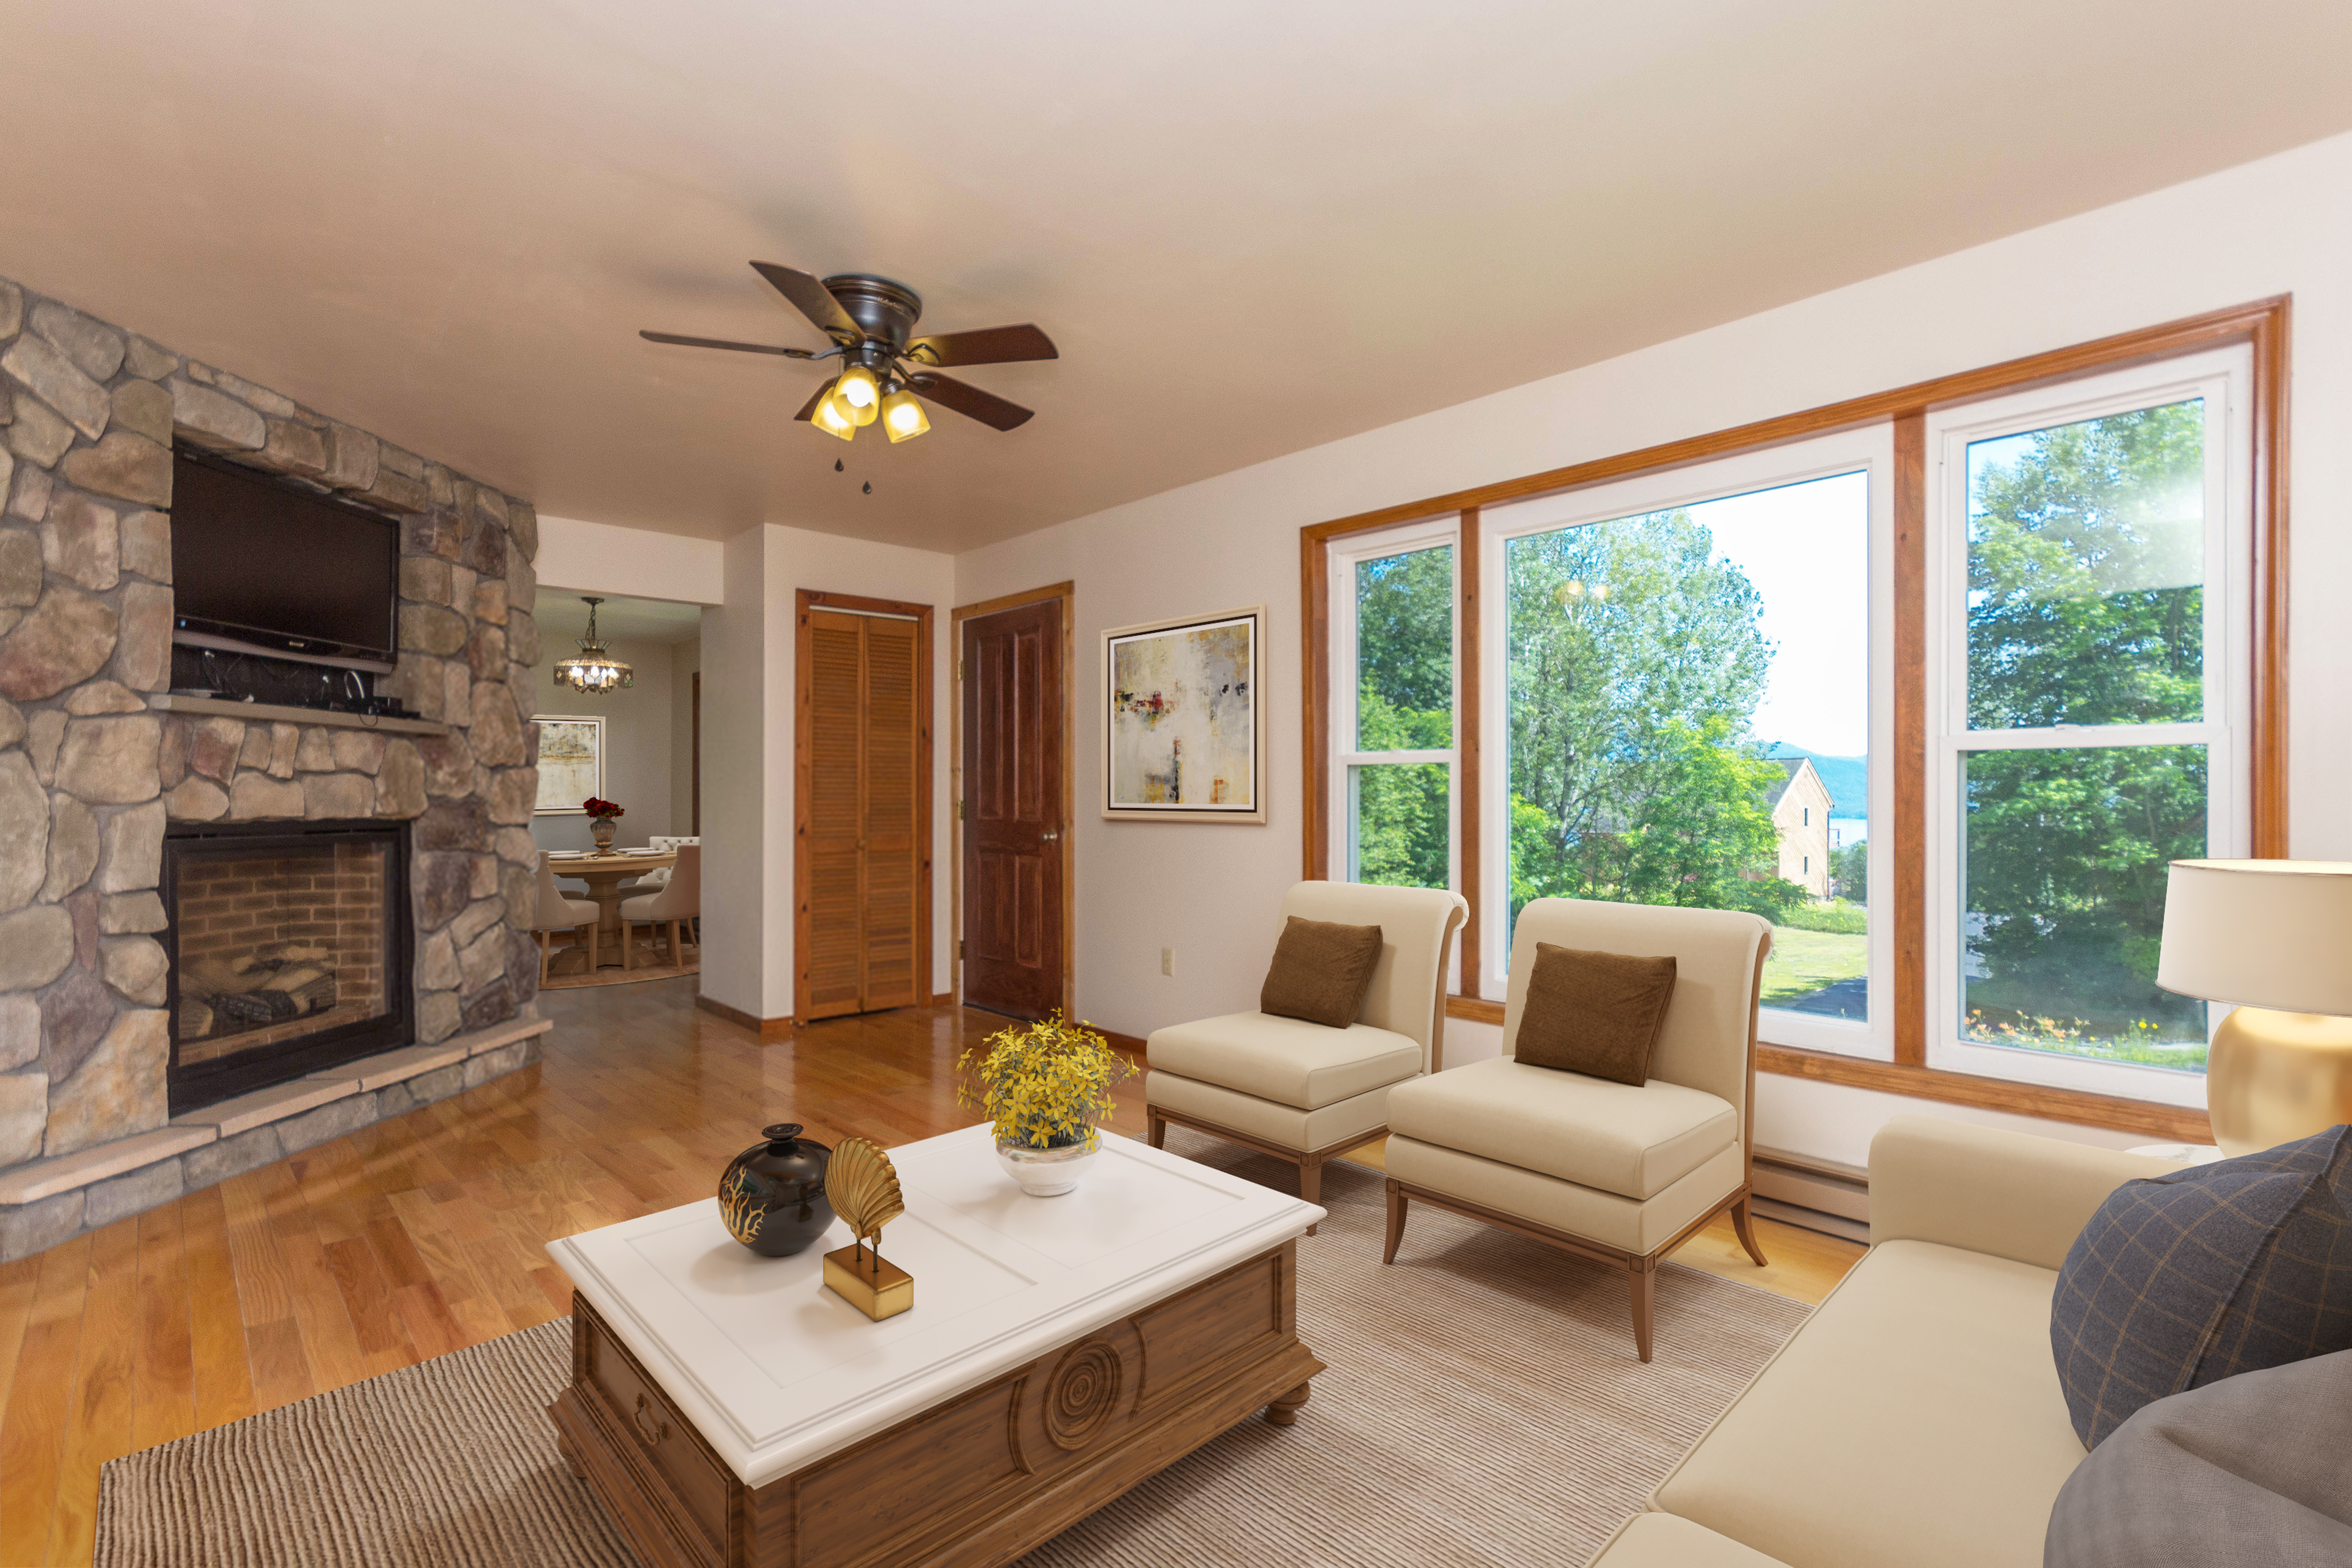 Residenza monofamiliare in vendita in 59 Mohican Heights Dr, Bolton Landing, NY ,12814